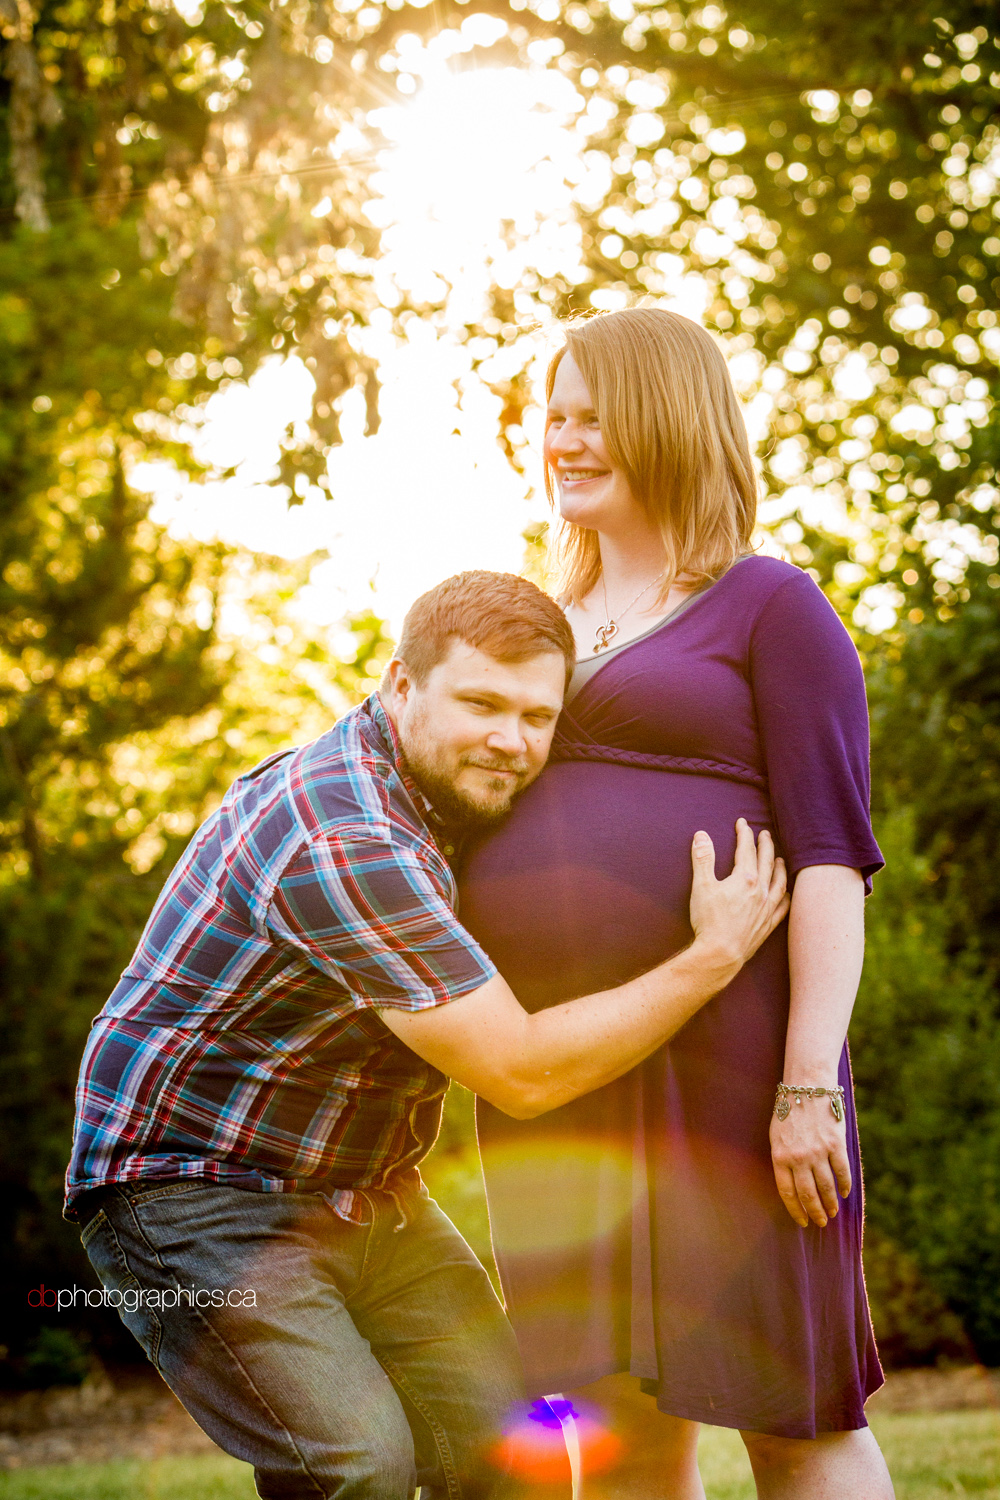 Elisabeth & Trent - Maternity Session - 20140707 - 0029.jpg